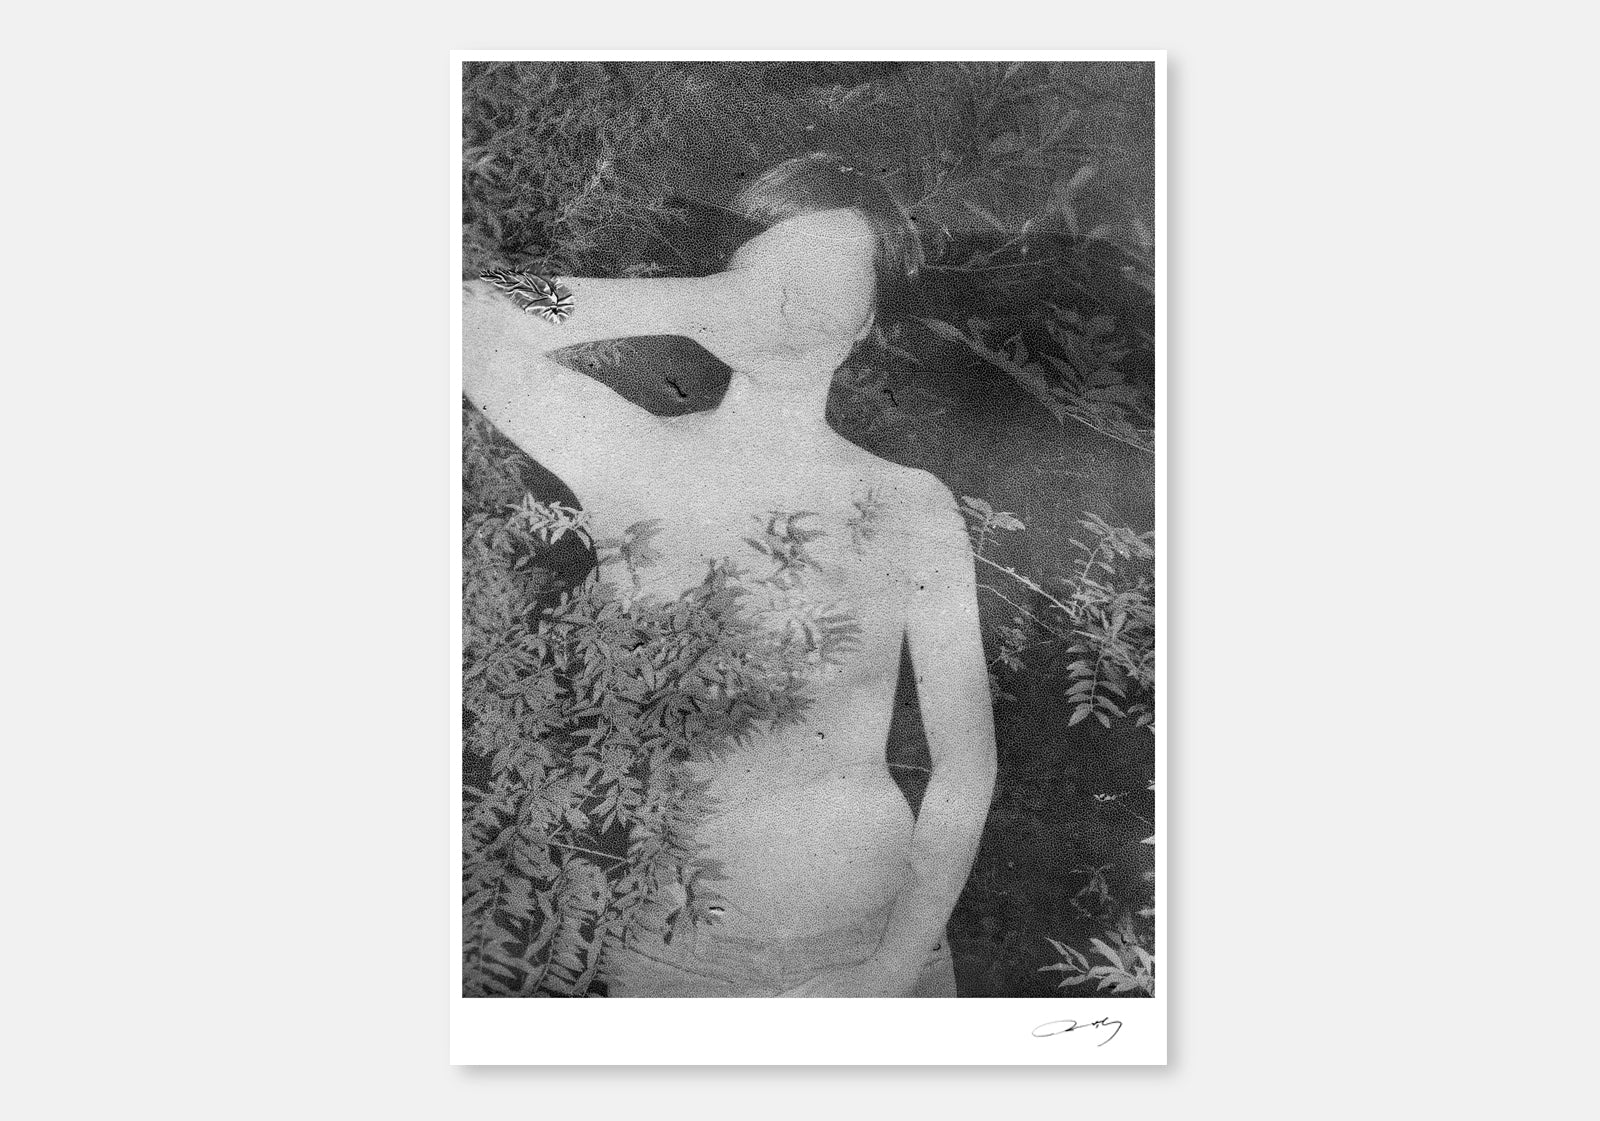 Untitled, Daisuke Yokota, (Framed, Numbered, Signed) - The Library Project